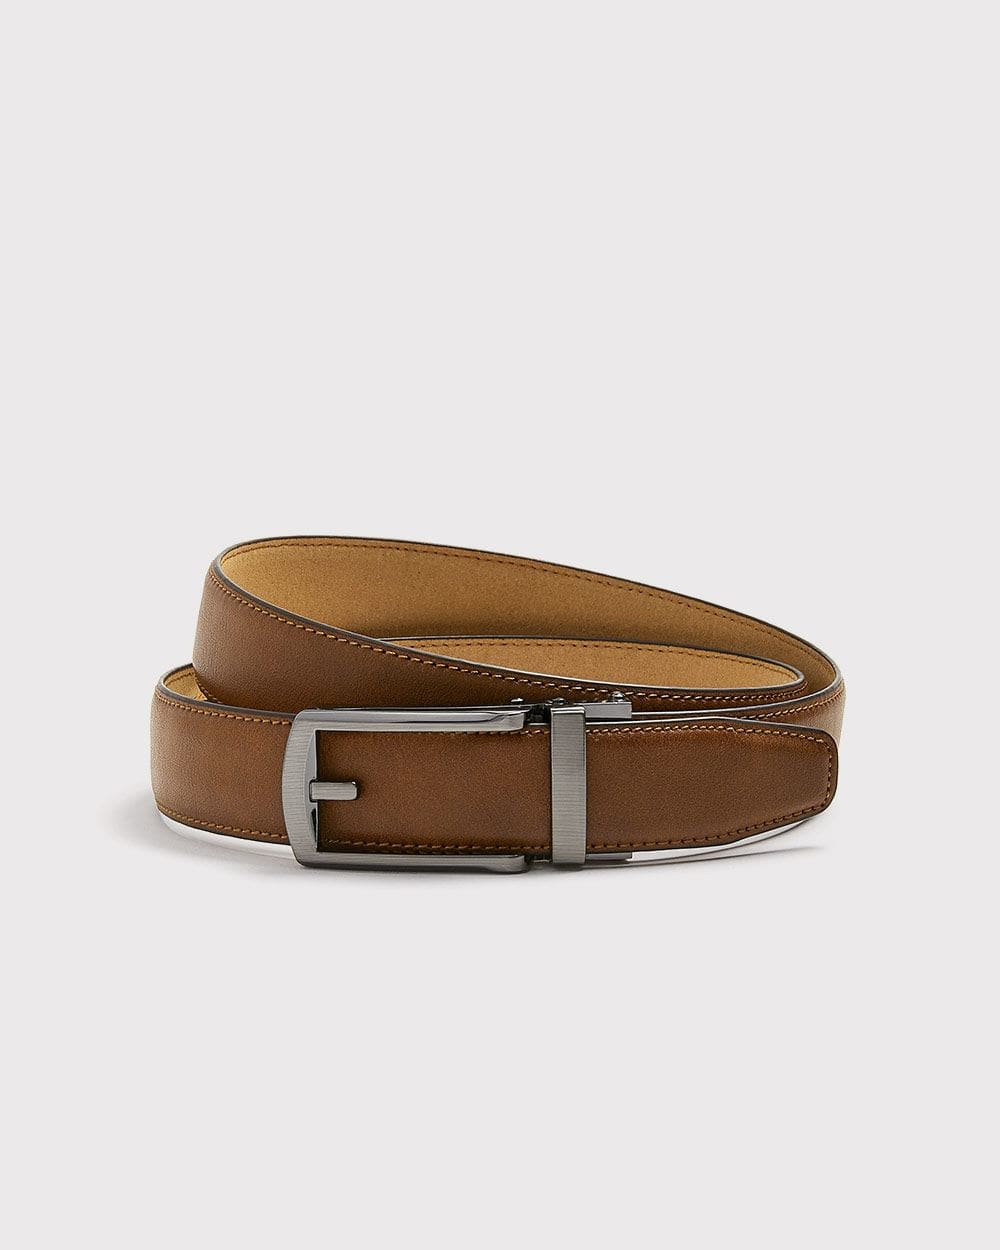 Tan leather belt with automatic buckle